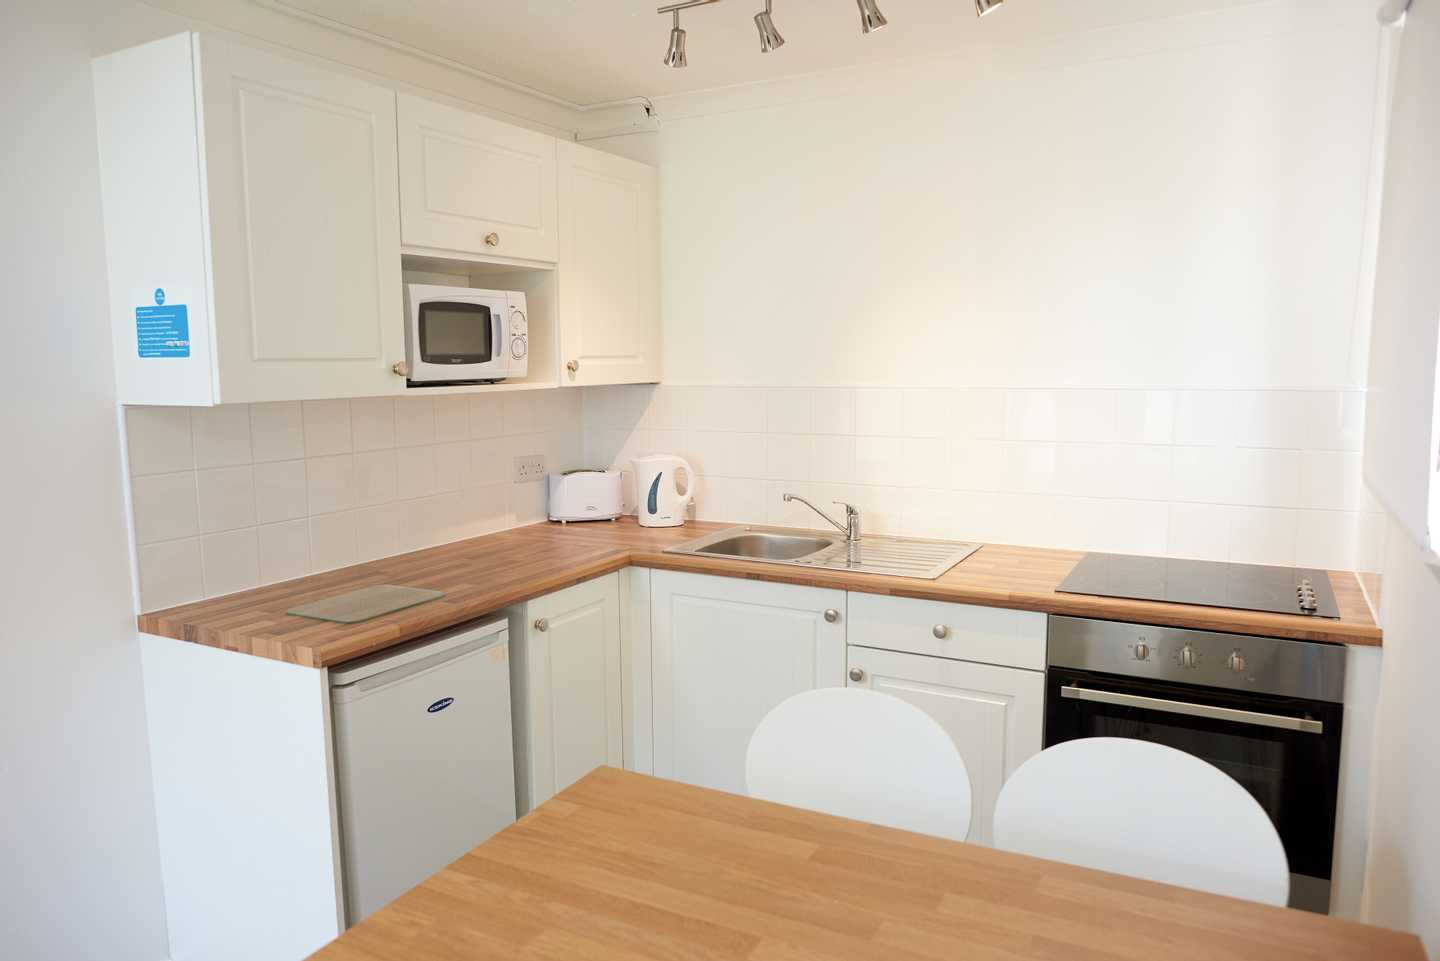 A Comfort apartment kitchen with cooker, sink, kettle, toaster, microwave and storage cupboards